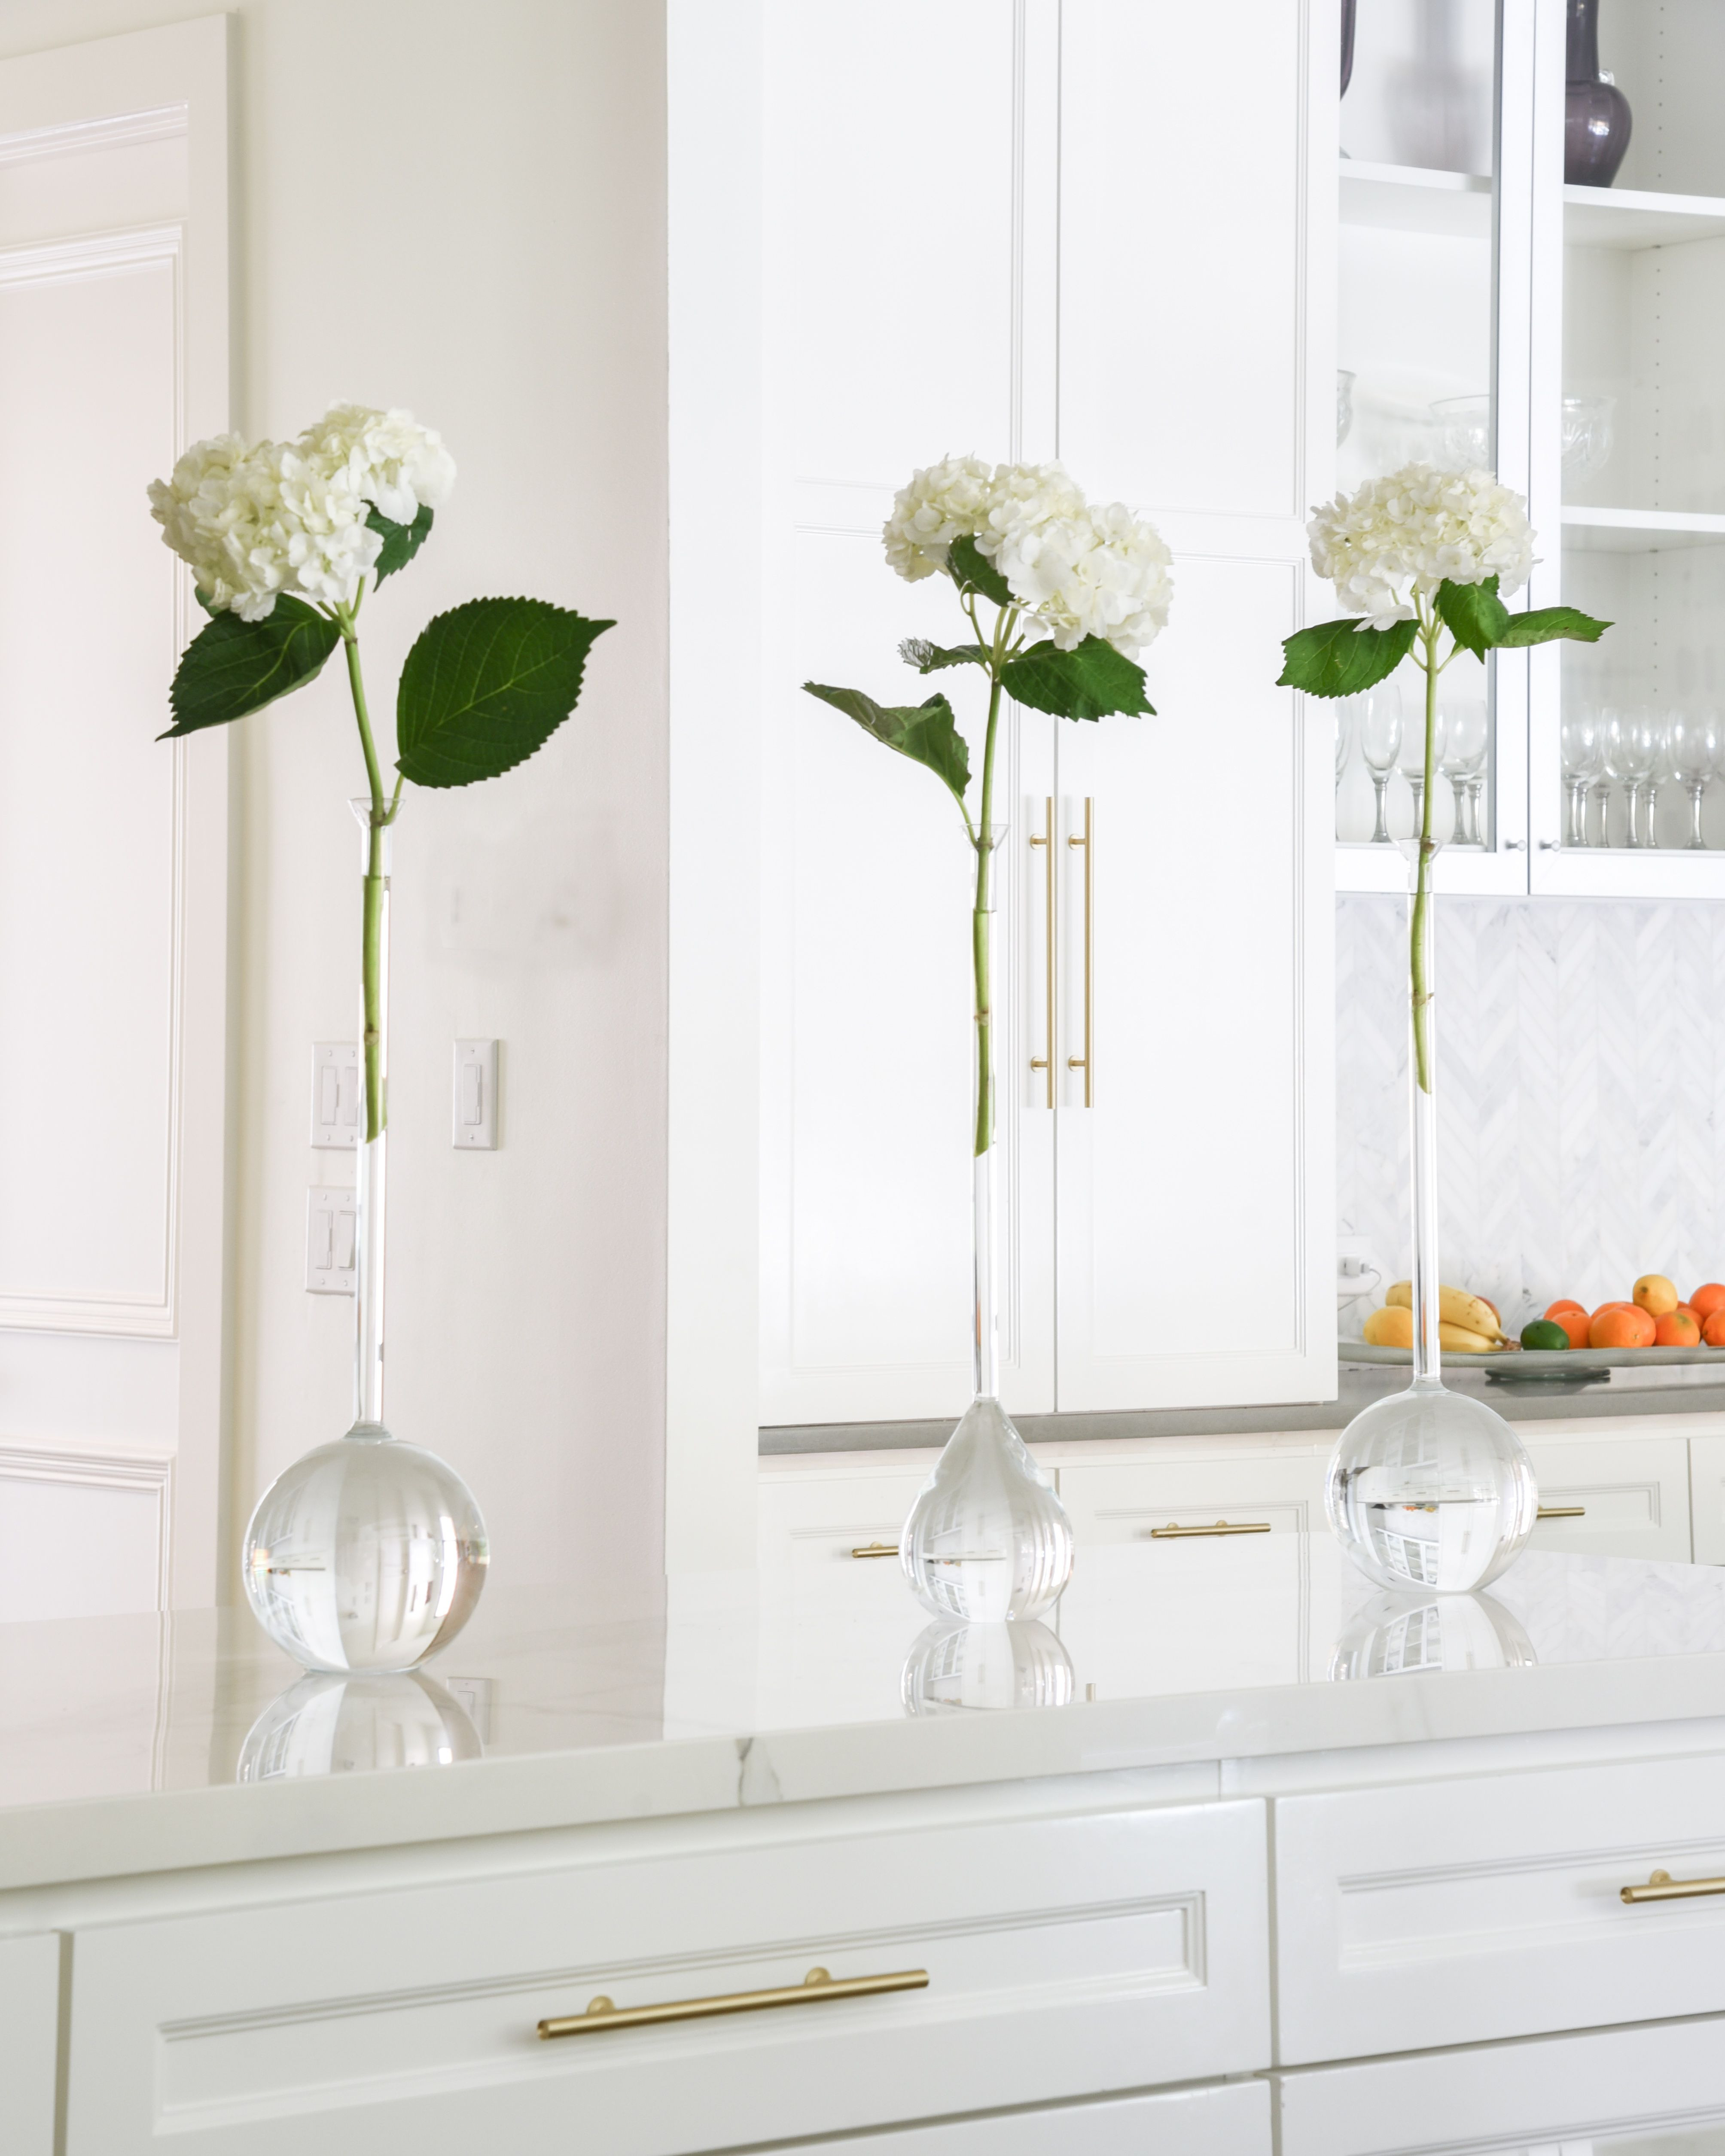 white frosted glass vase of tall glass vases sold at blue print gift ideas kitchen island with tall glass vases sold at blue print gift ideas kitchen island decor blueprintstore com